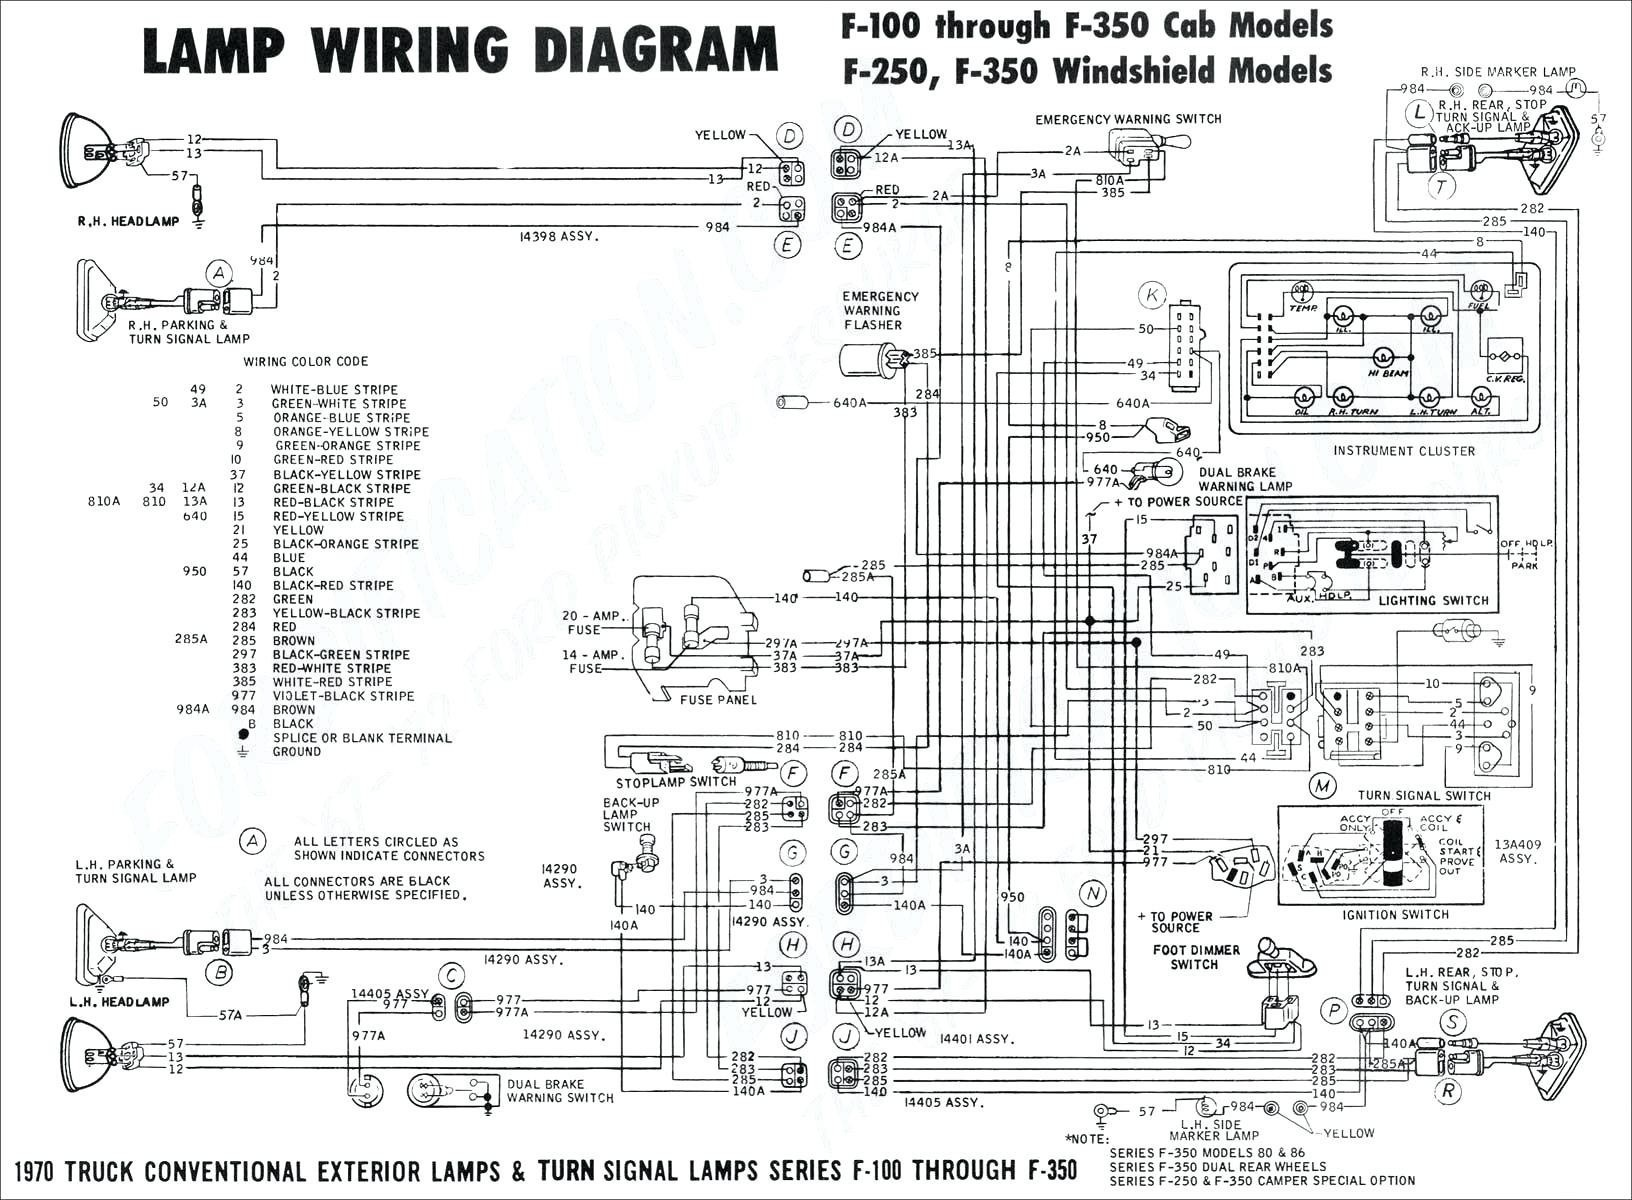 1986 Club Car Ds Schematic Wiring Diagram Suzuki Dt40 Wiring Diagram Of 1986 Club Car Ds Schematic Wiring Diagram